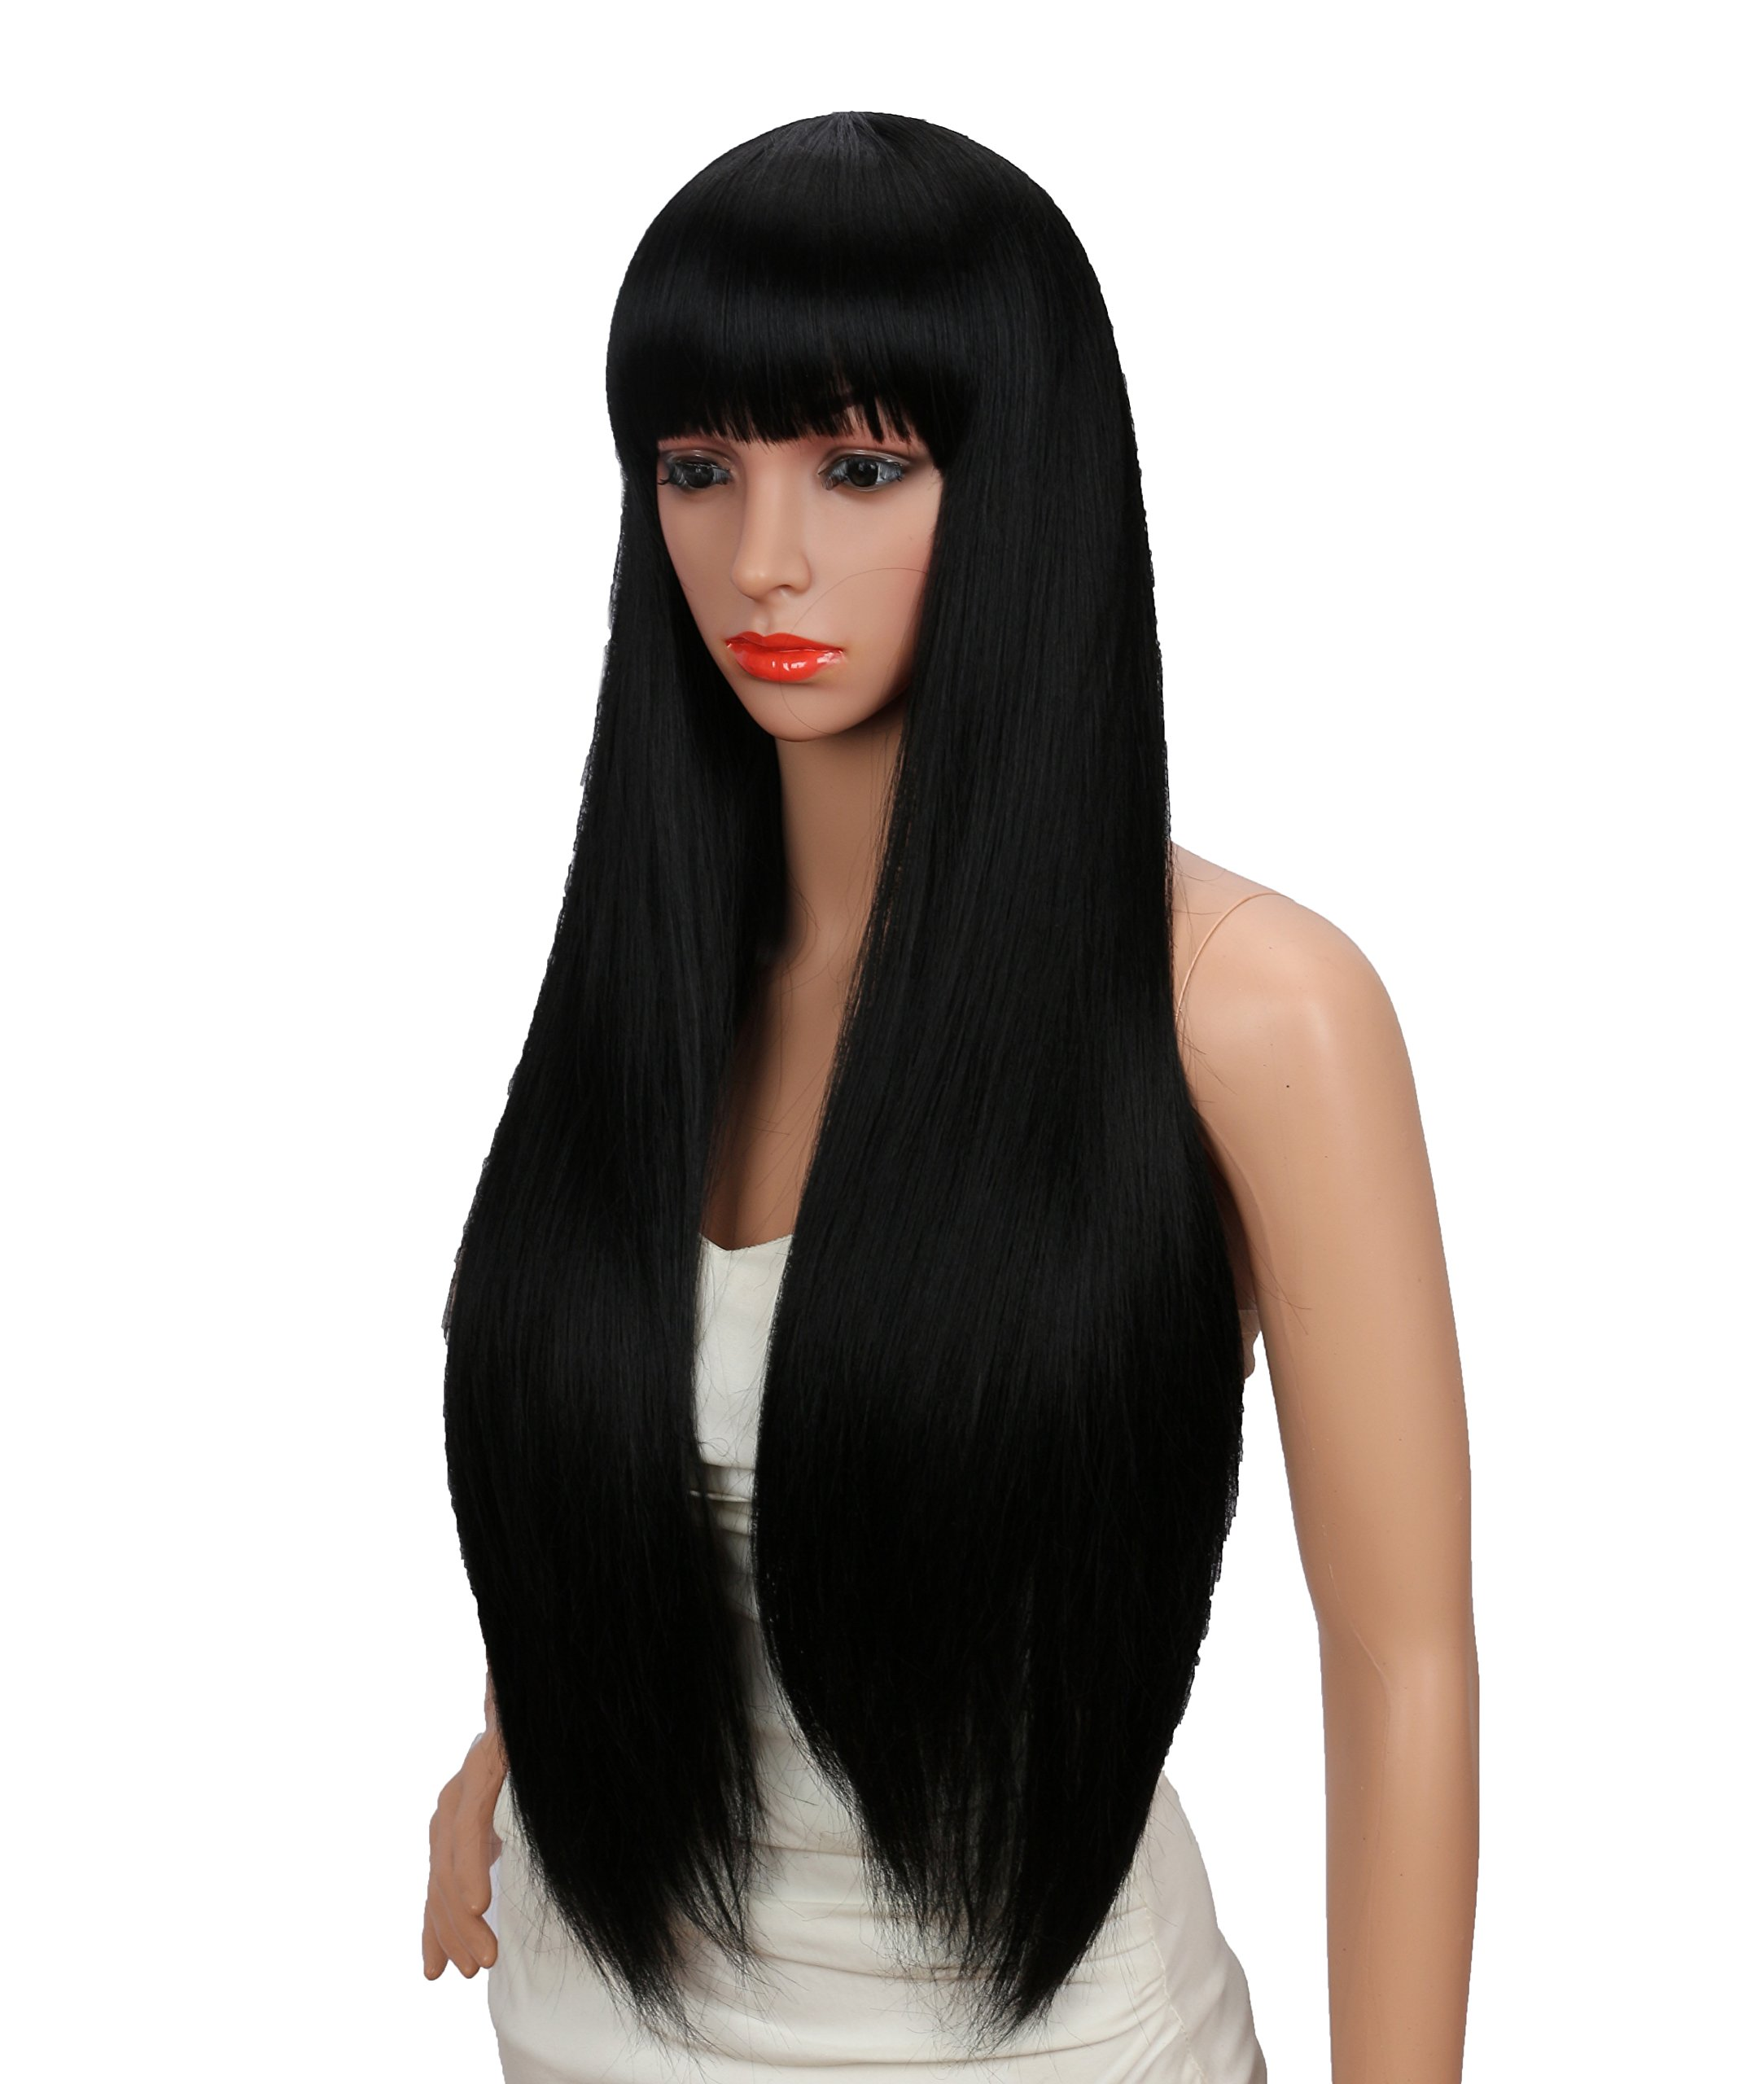 Kalyss 26 inches Women's Silky Long Straight Black Wig Heat Resistant Synthetic Wig With Bangs Hair Wig for Women